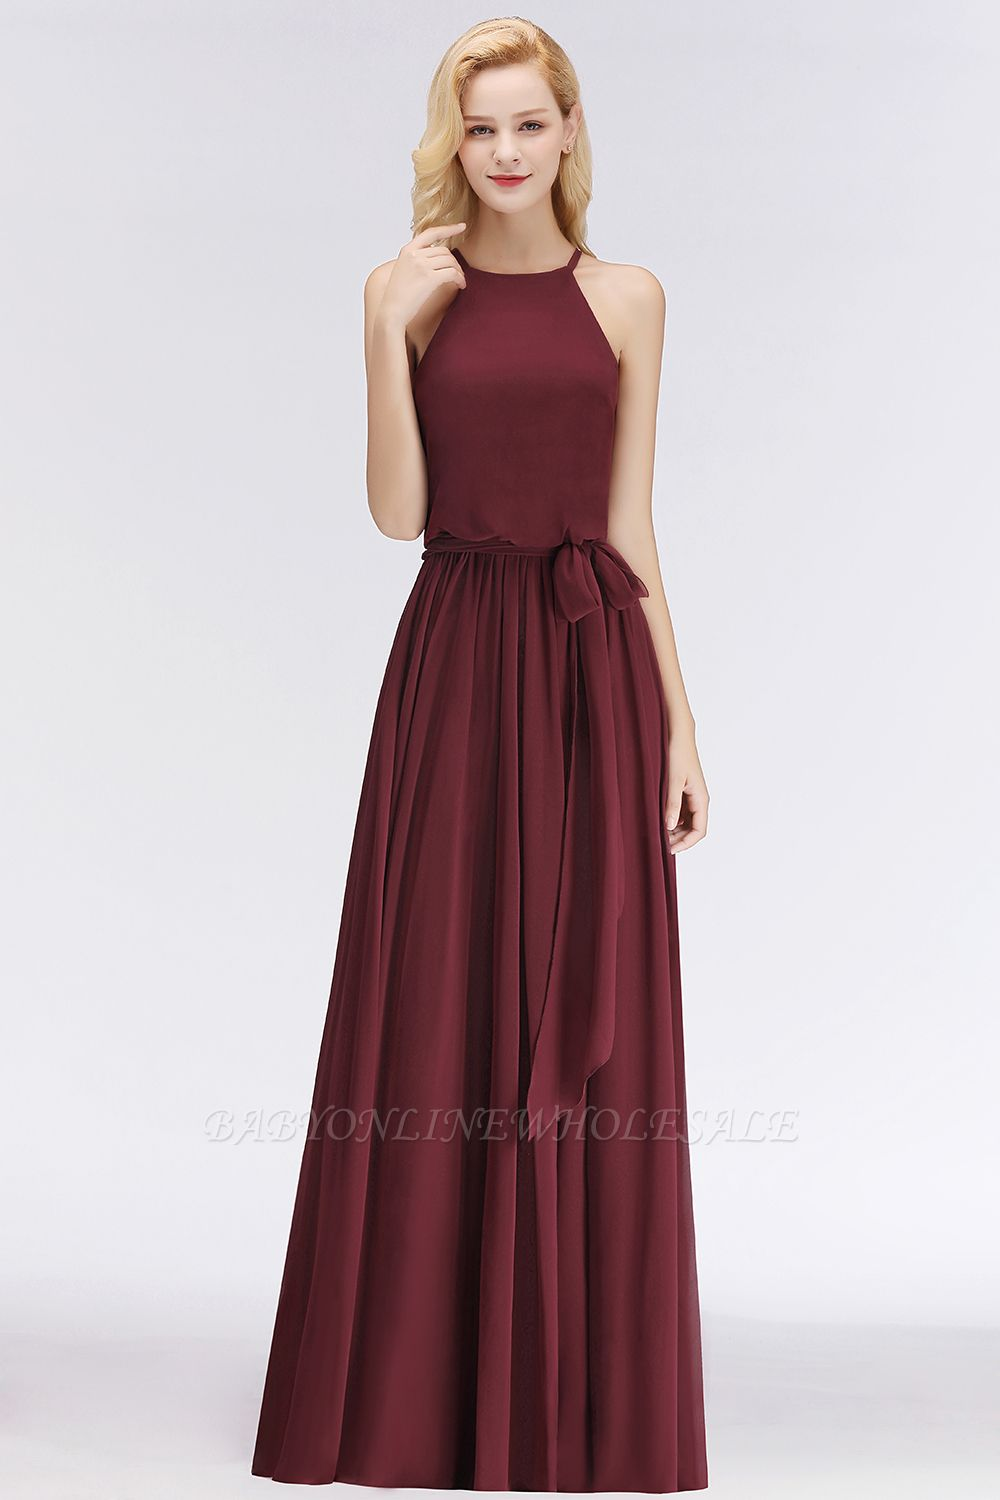 NICOLE | A-line Halter Sleeveless Long Burgundy Ruffles Chiffon Bridesmaid Dresses